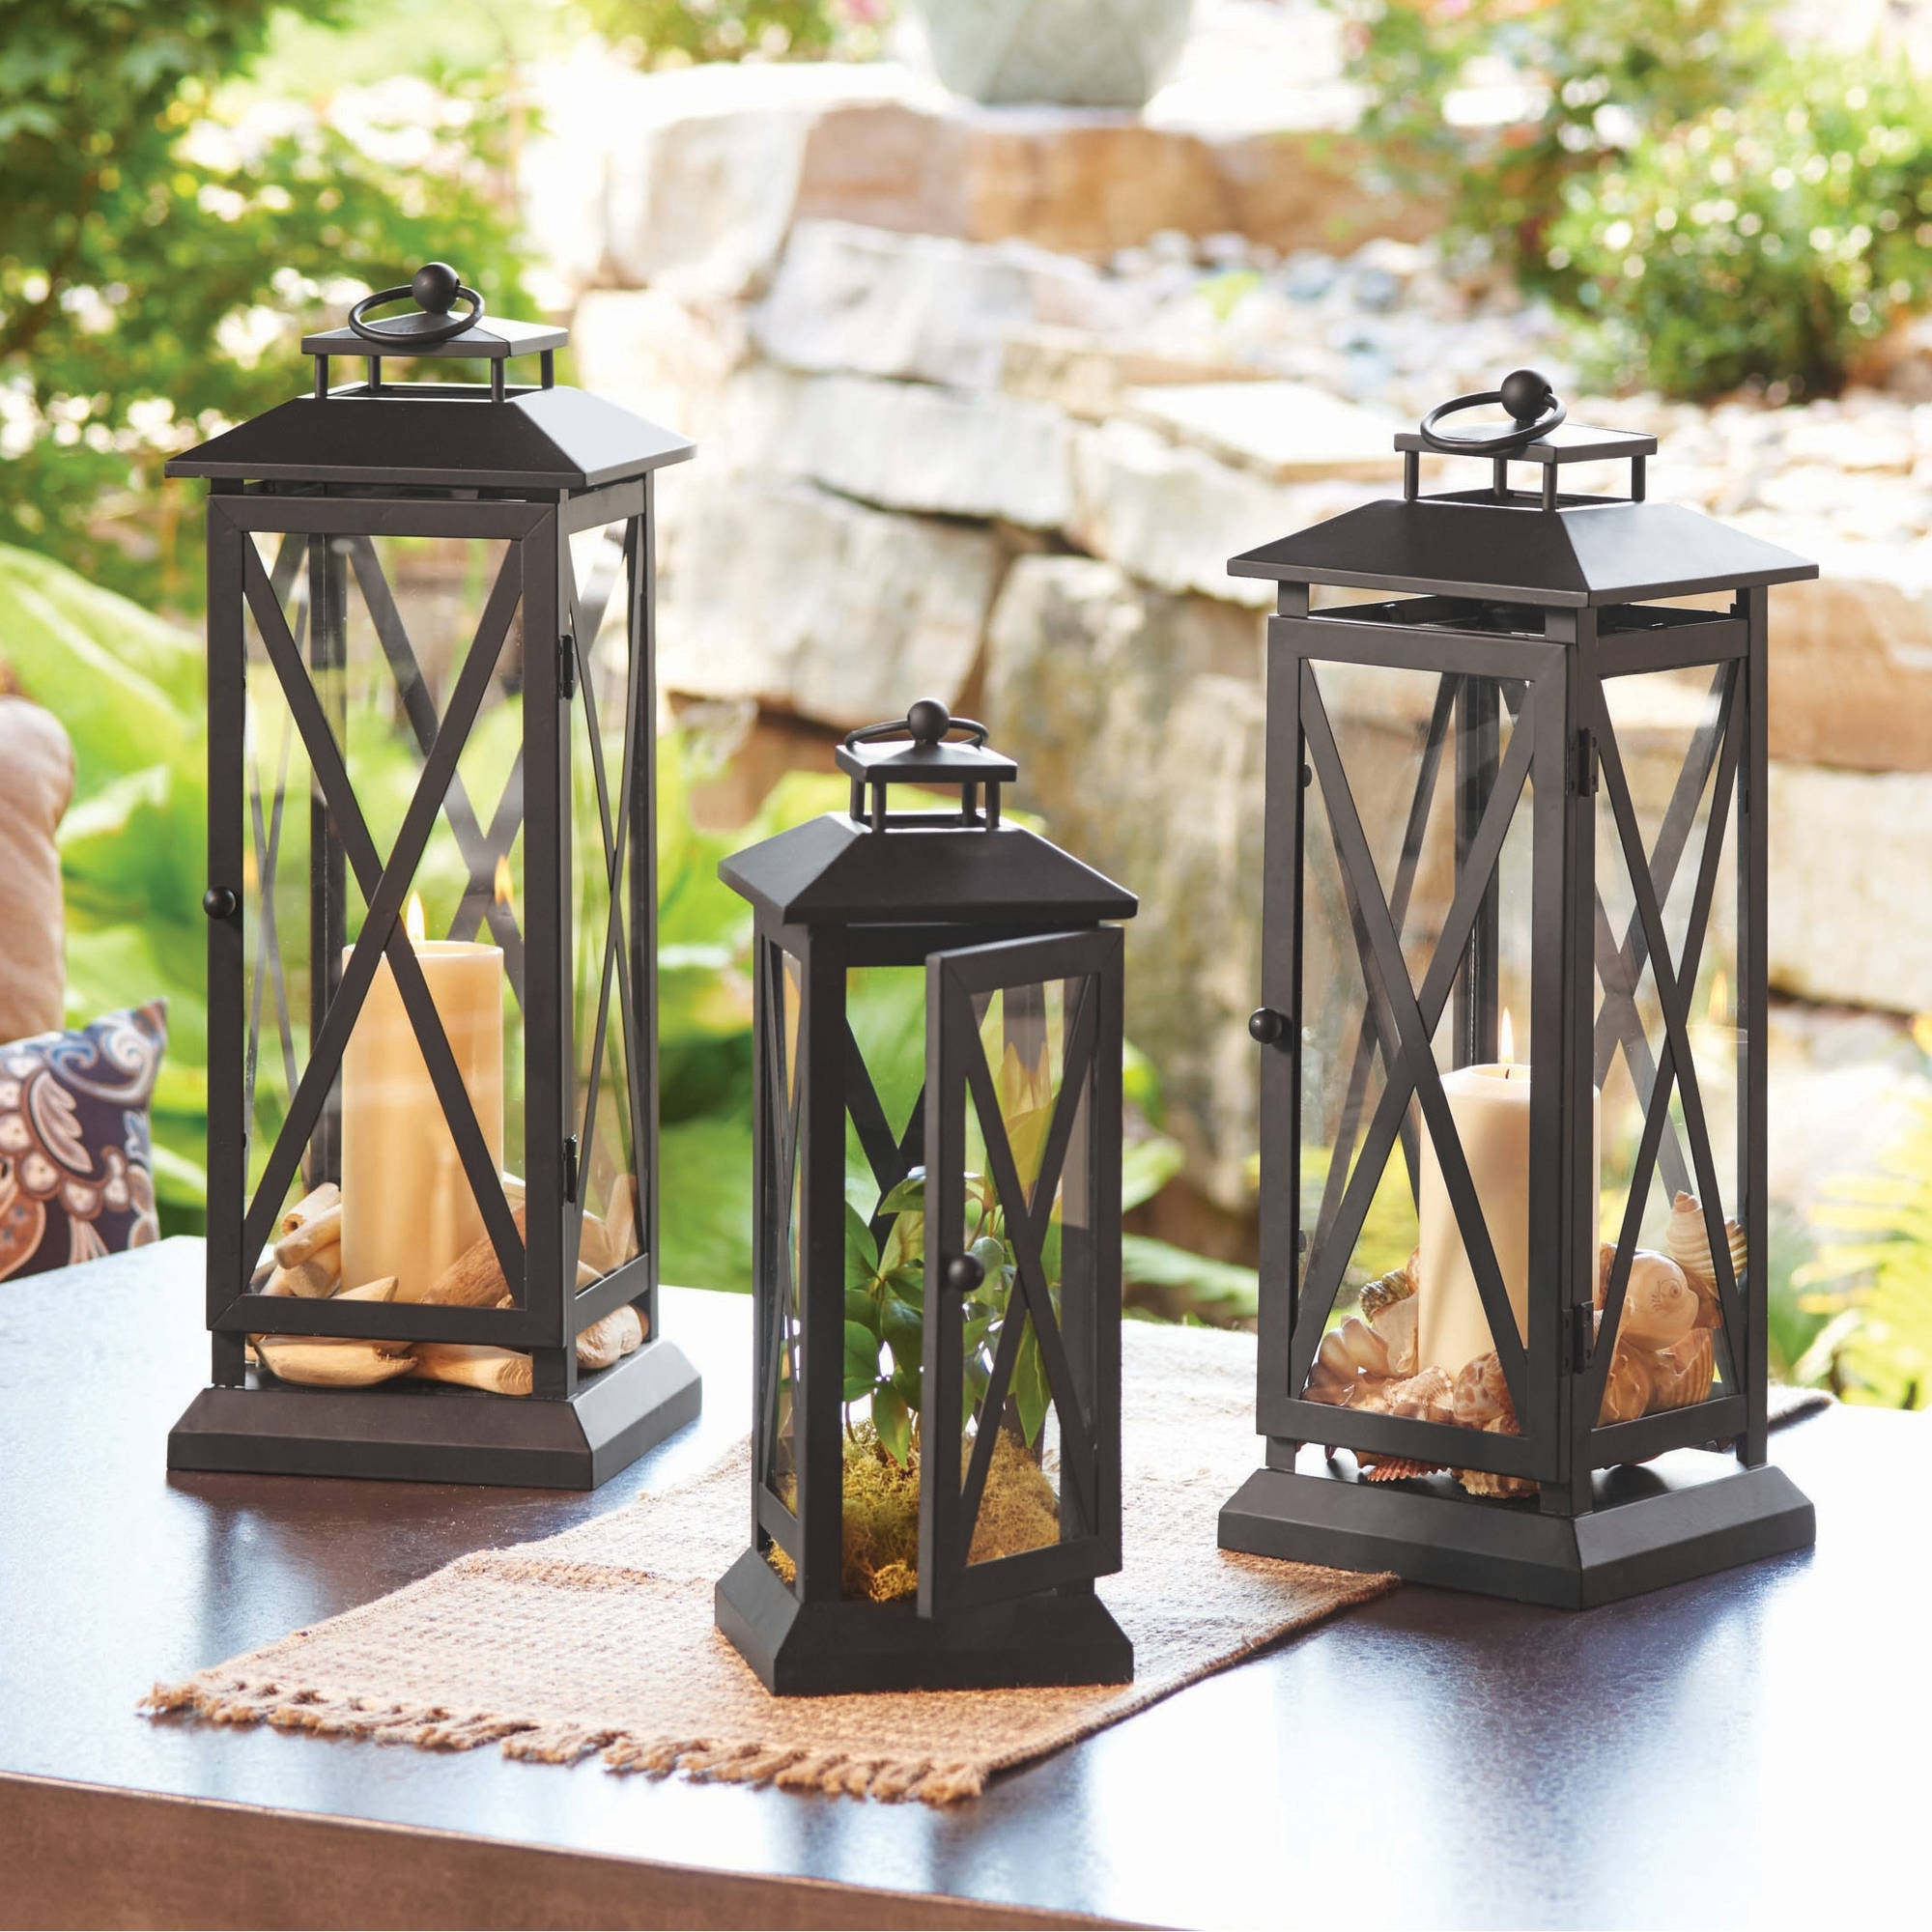 Fashionable Outdoor Vinyl Lanterns Within Better Homes And Gardens Crossbar Metal Outdoor Lantern – Walmart (Gallery 7 of 20)